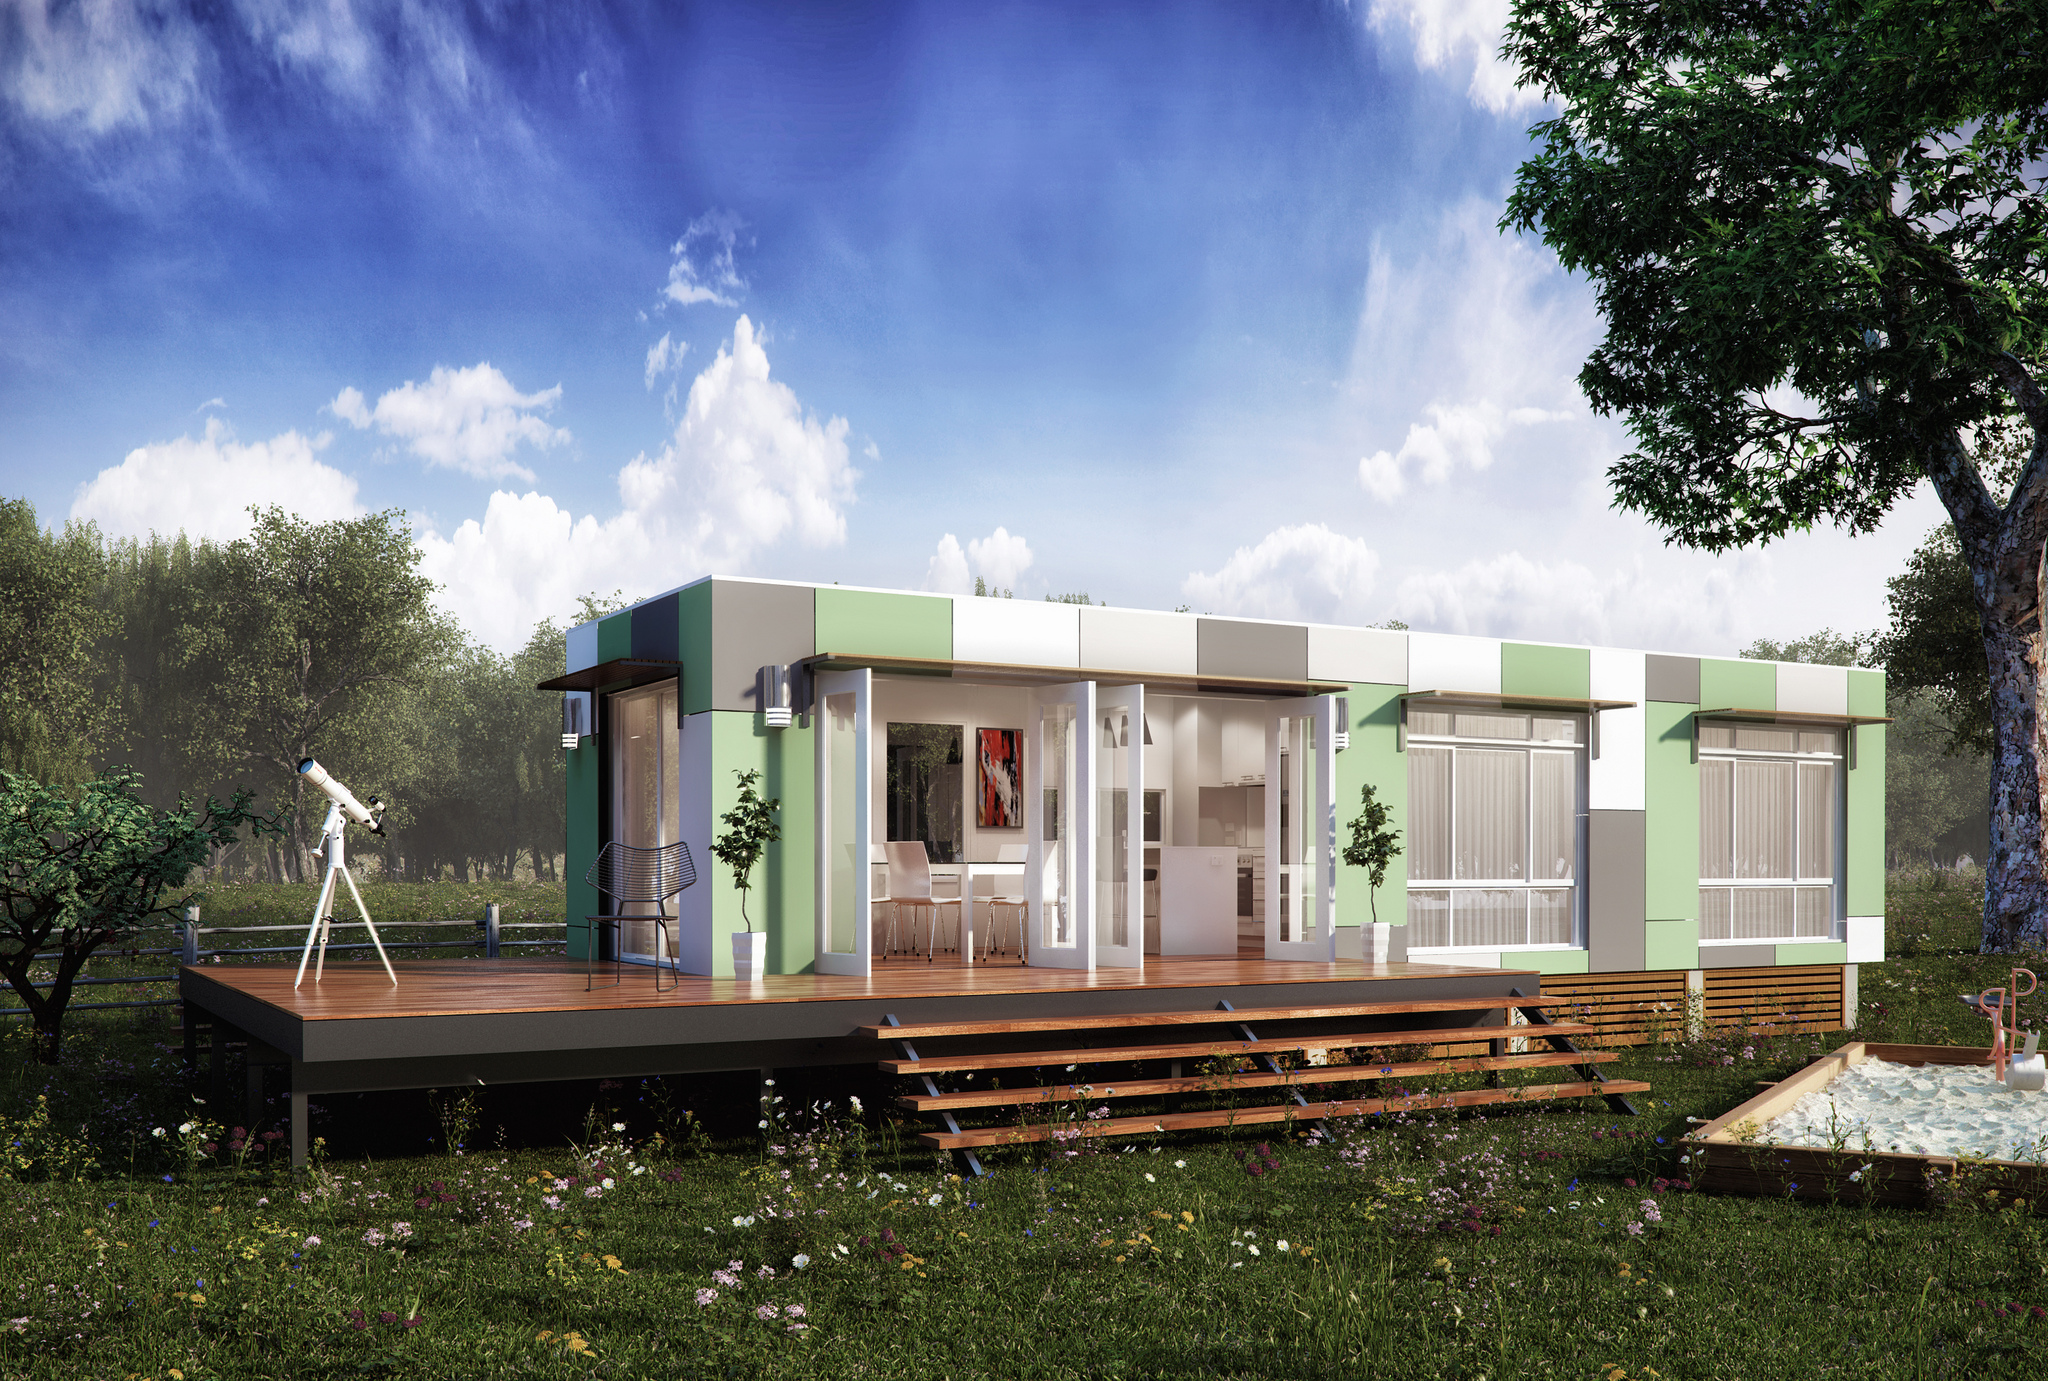 Container Home Design Ideas amazing house design ideas this house created from 31 shipping containers in australia youtube 5 Gentle Shades Of Pastel